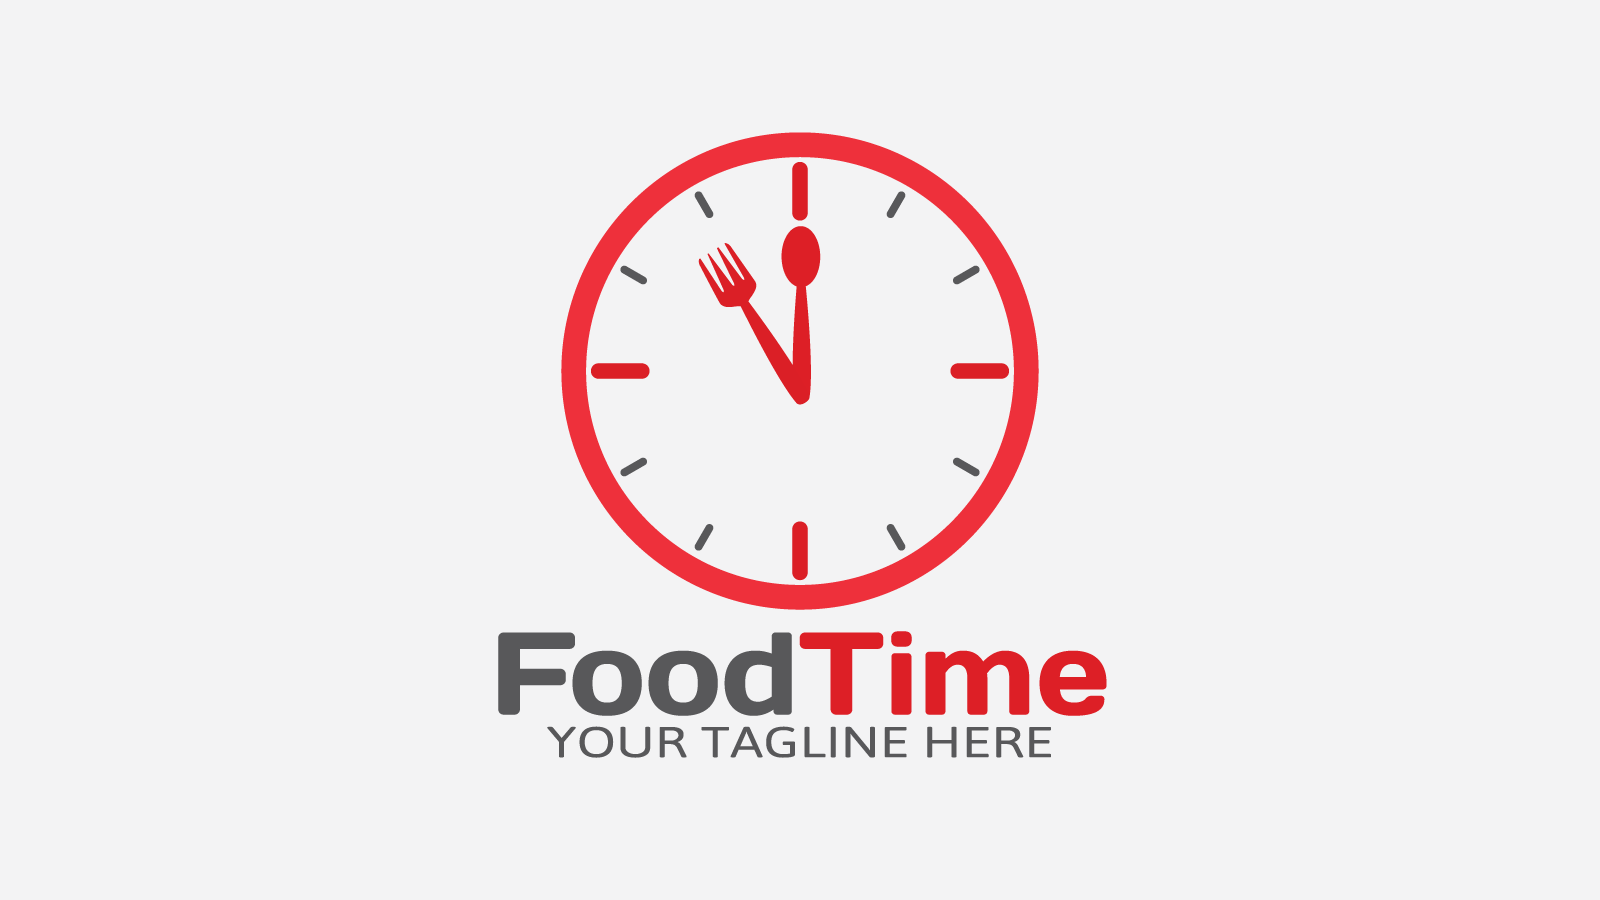 foodtime free logo design zfreegraphic free vector logo downloads